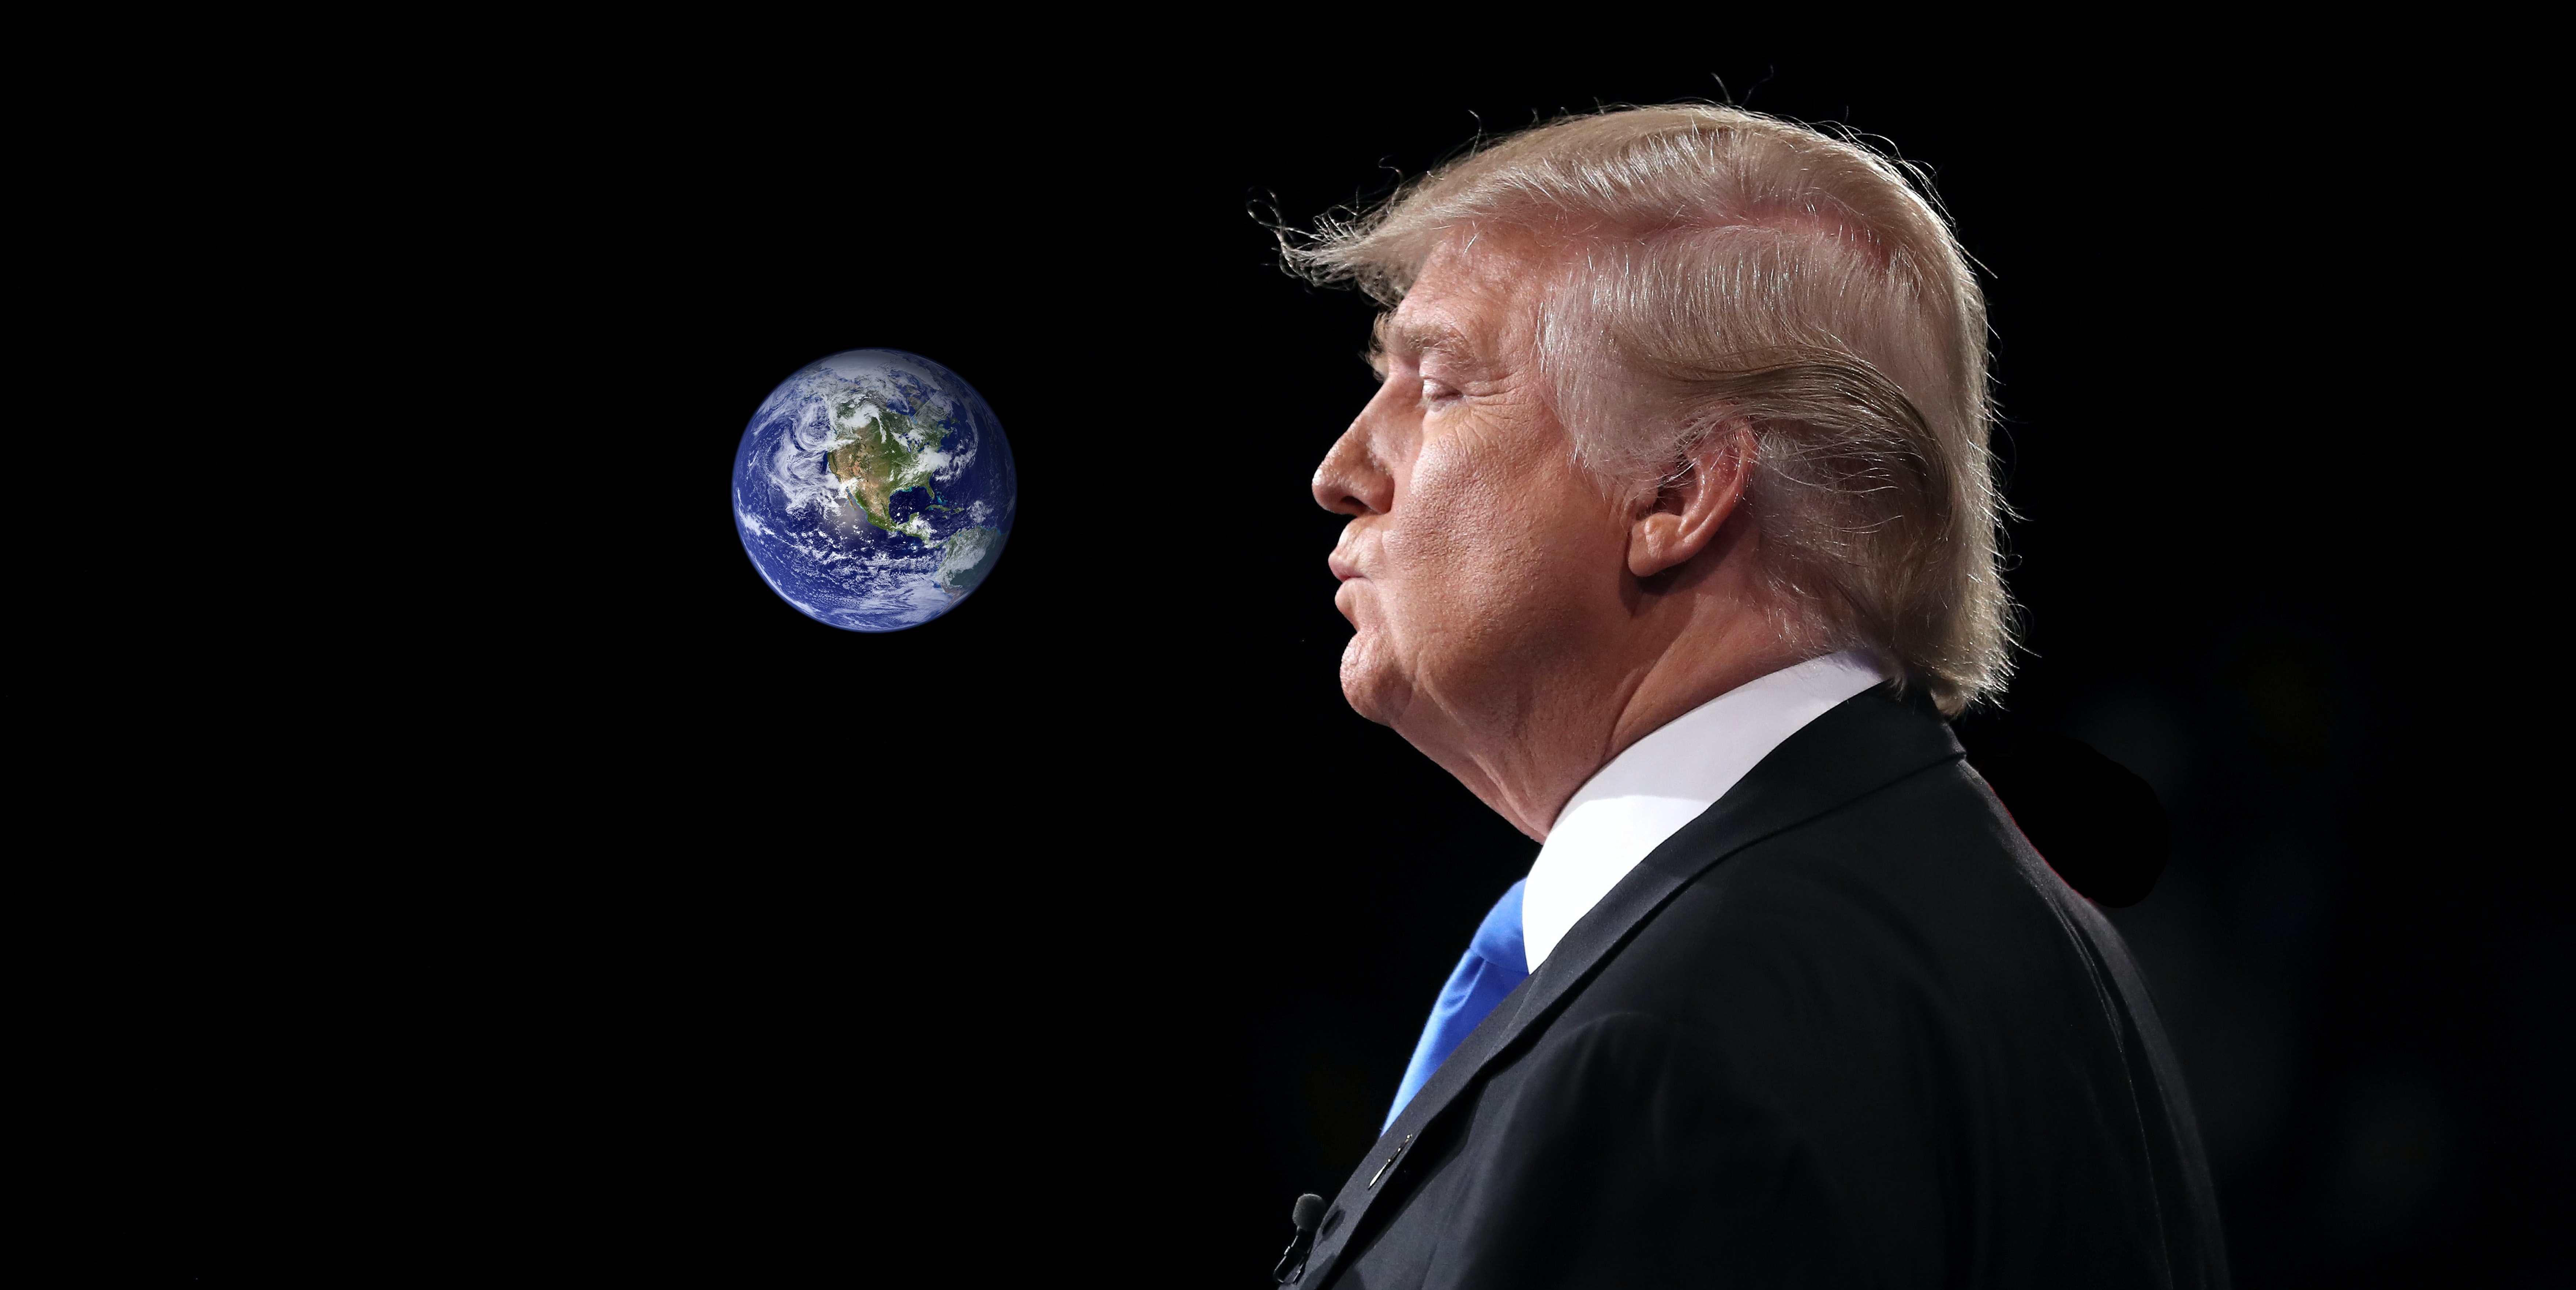 Neil deGrasse Tyson wants to send Donald Trump to space to save the Earth.